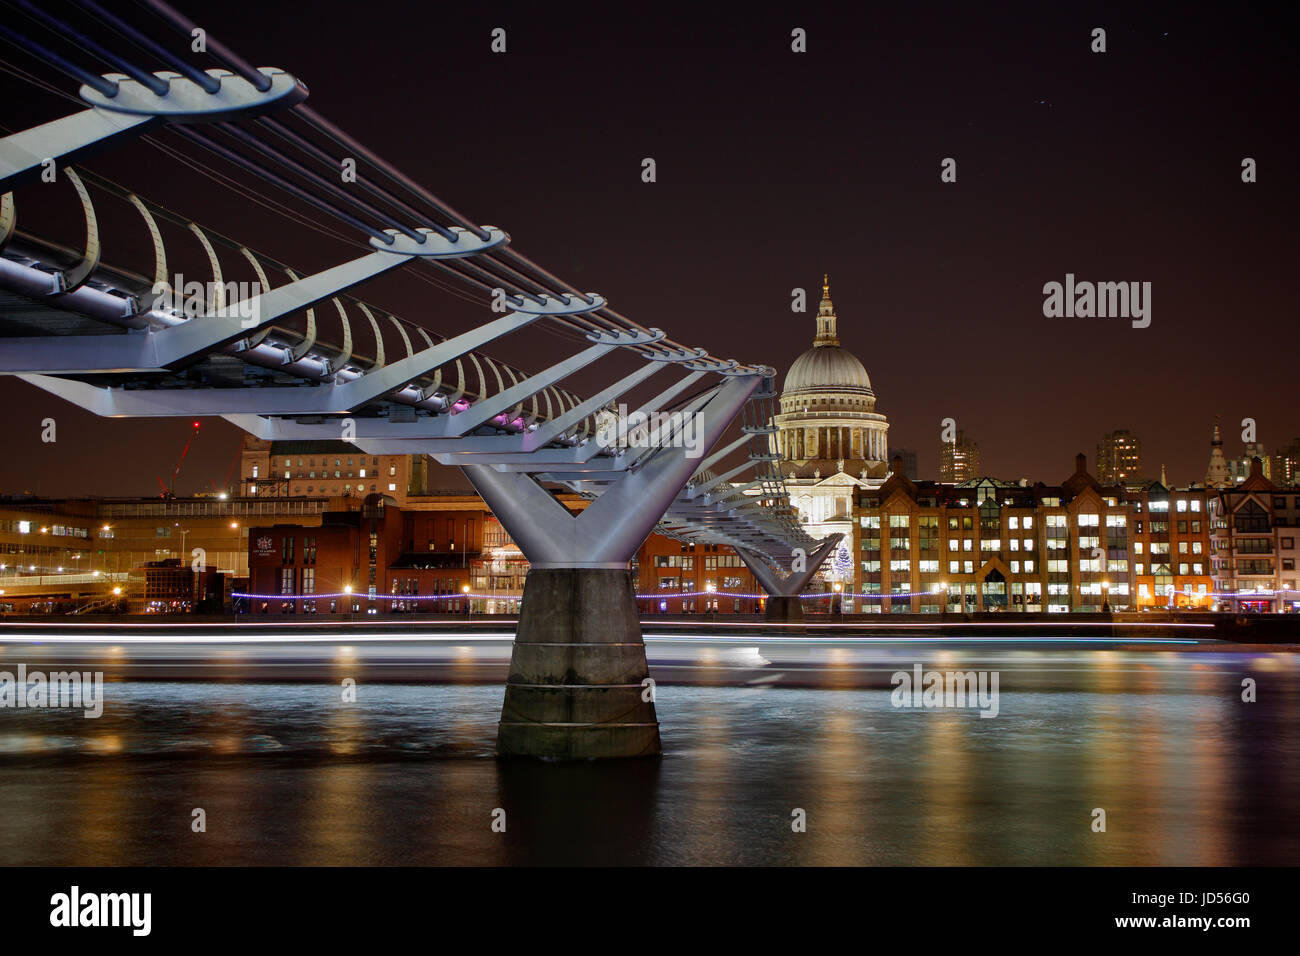 St Pauls cathedral and the Millennium footbridge across the Thames in London UK - Stock Image